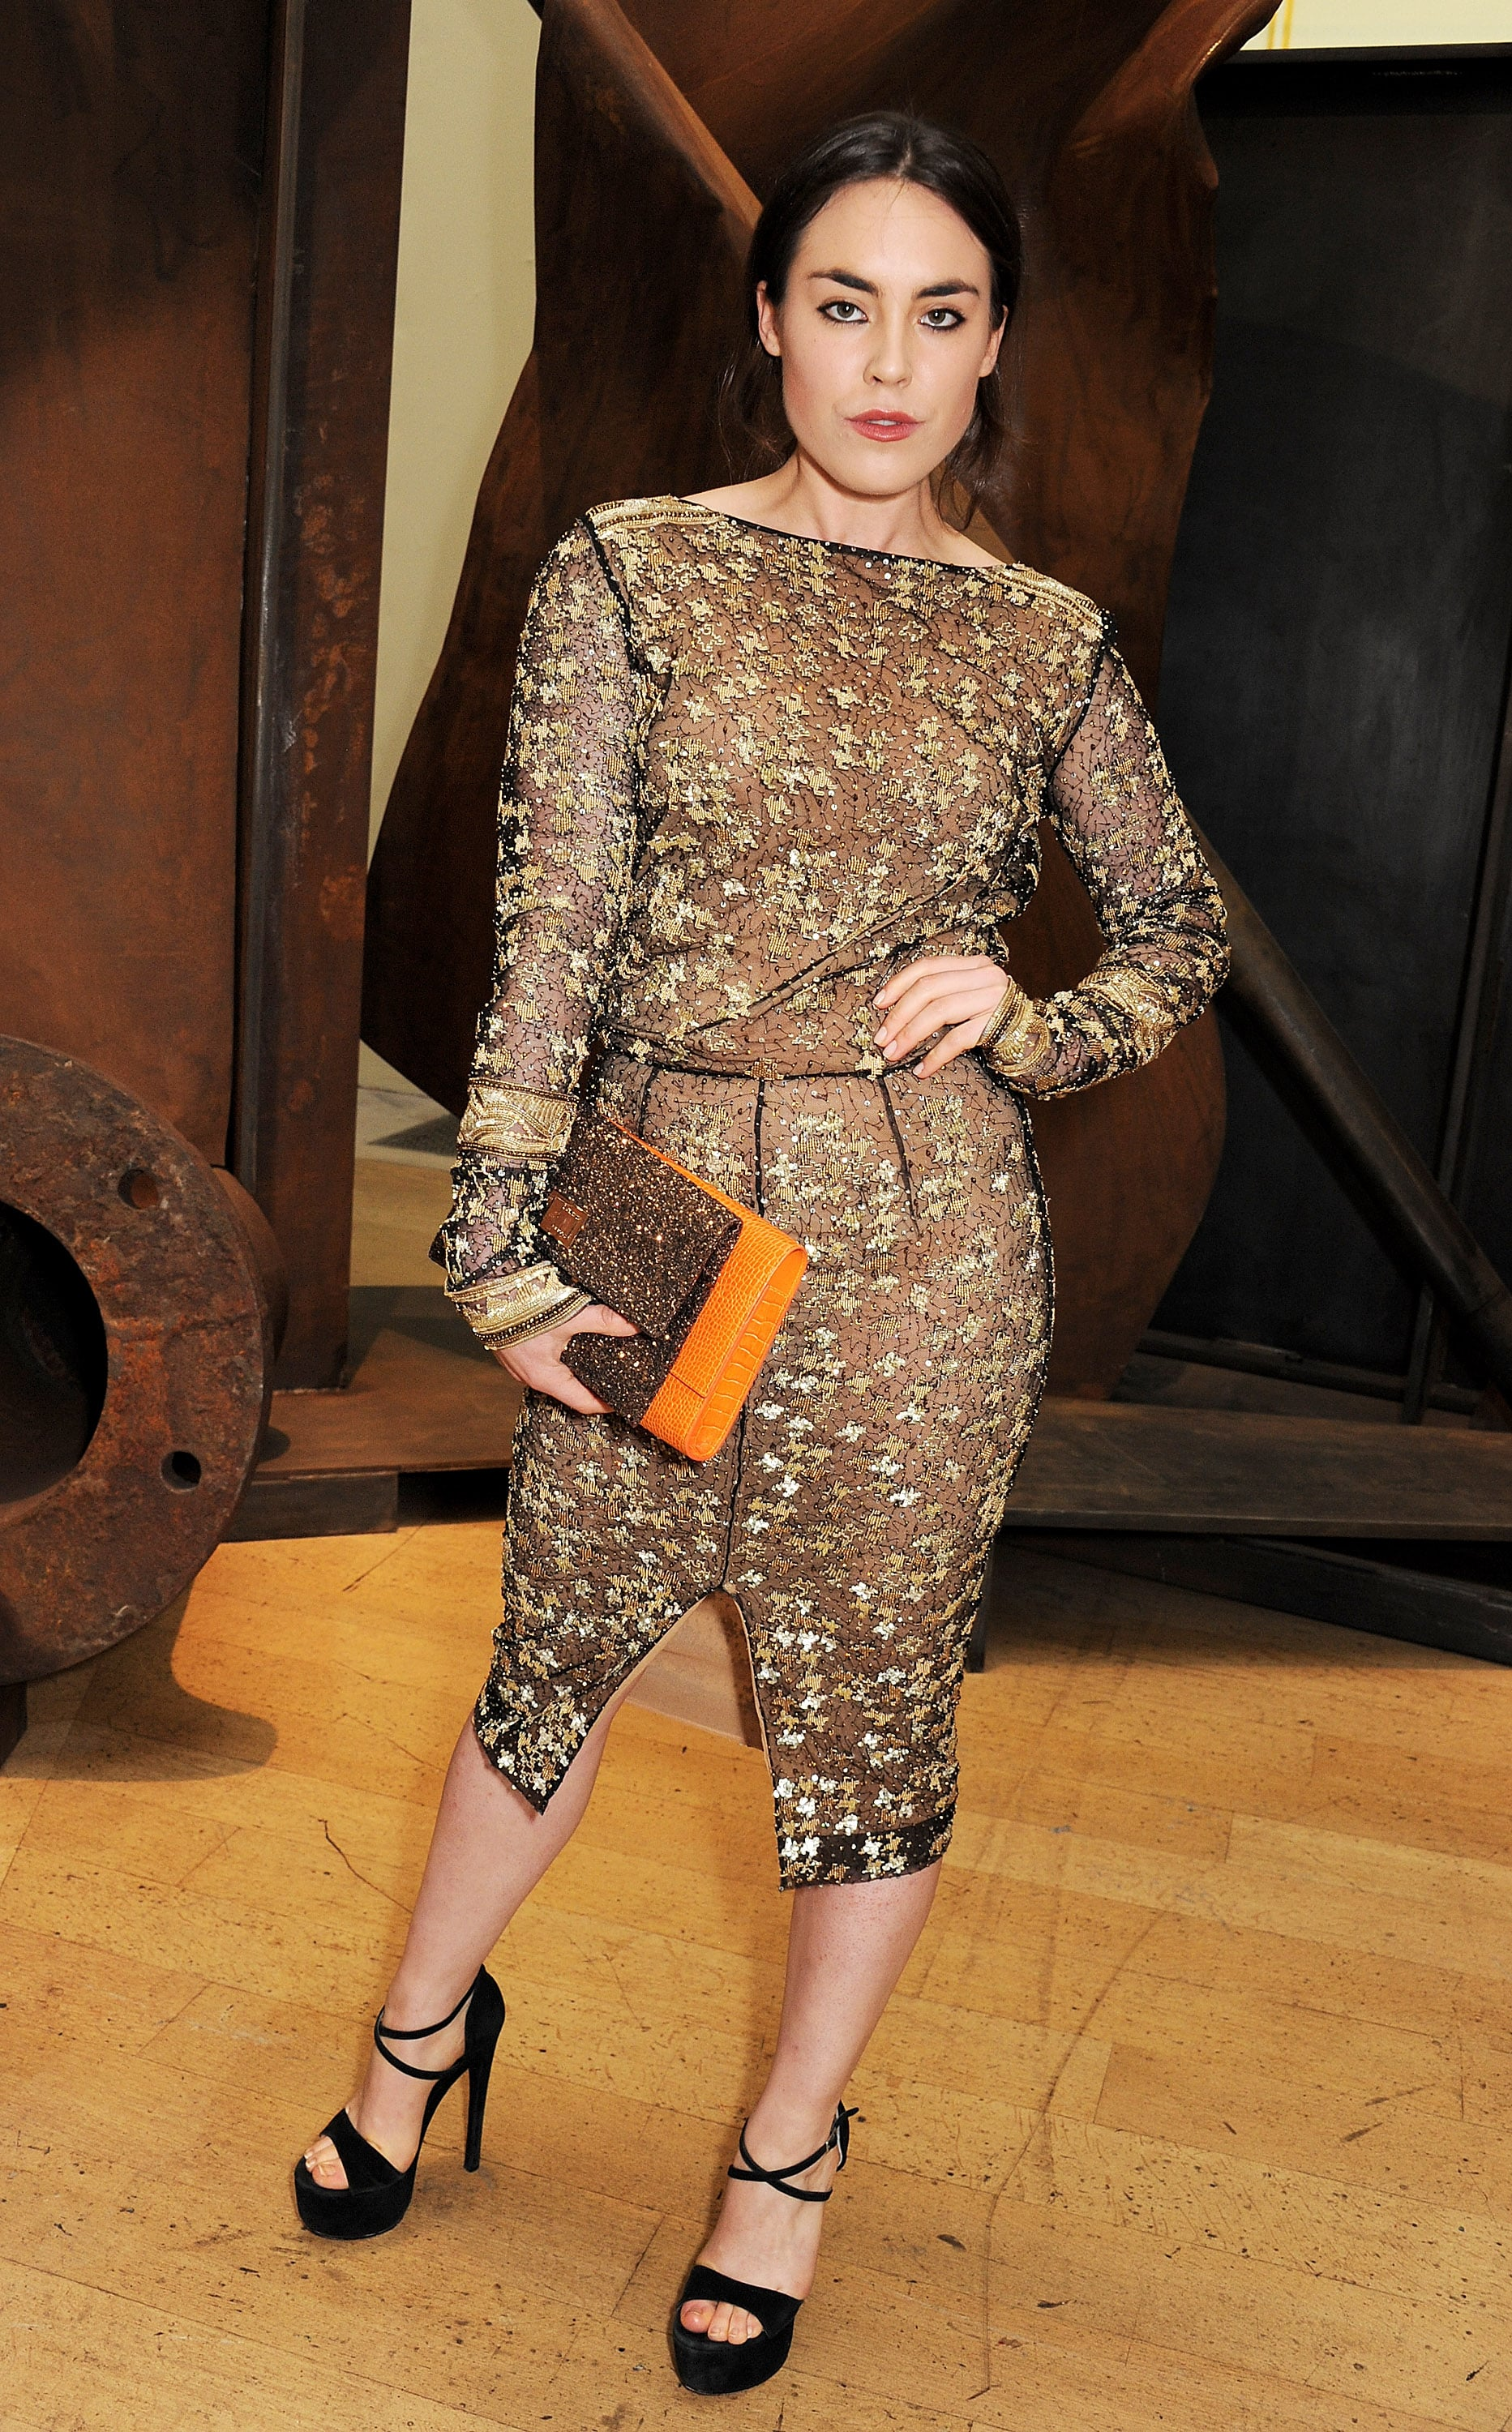 Tallulah Harlech at the Royal Academy of Arts Summer exhibition in London.